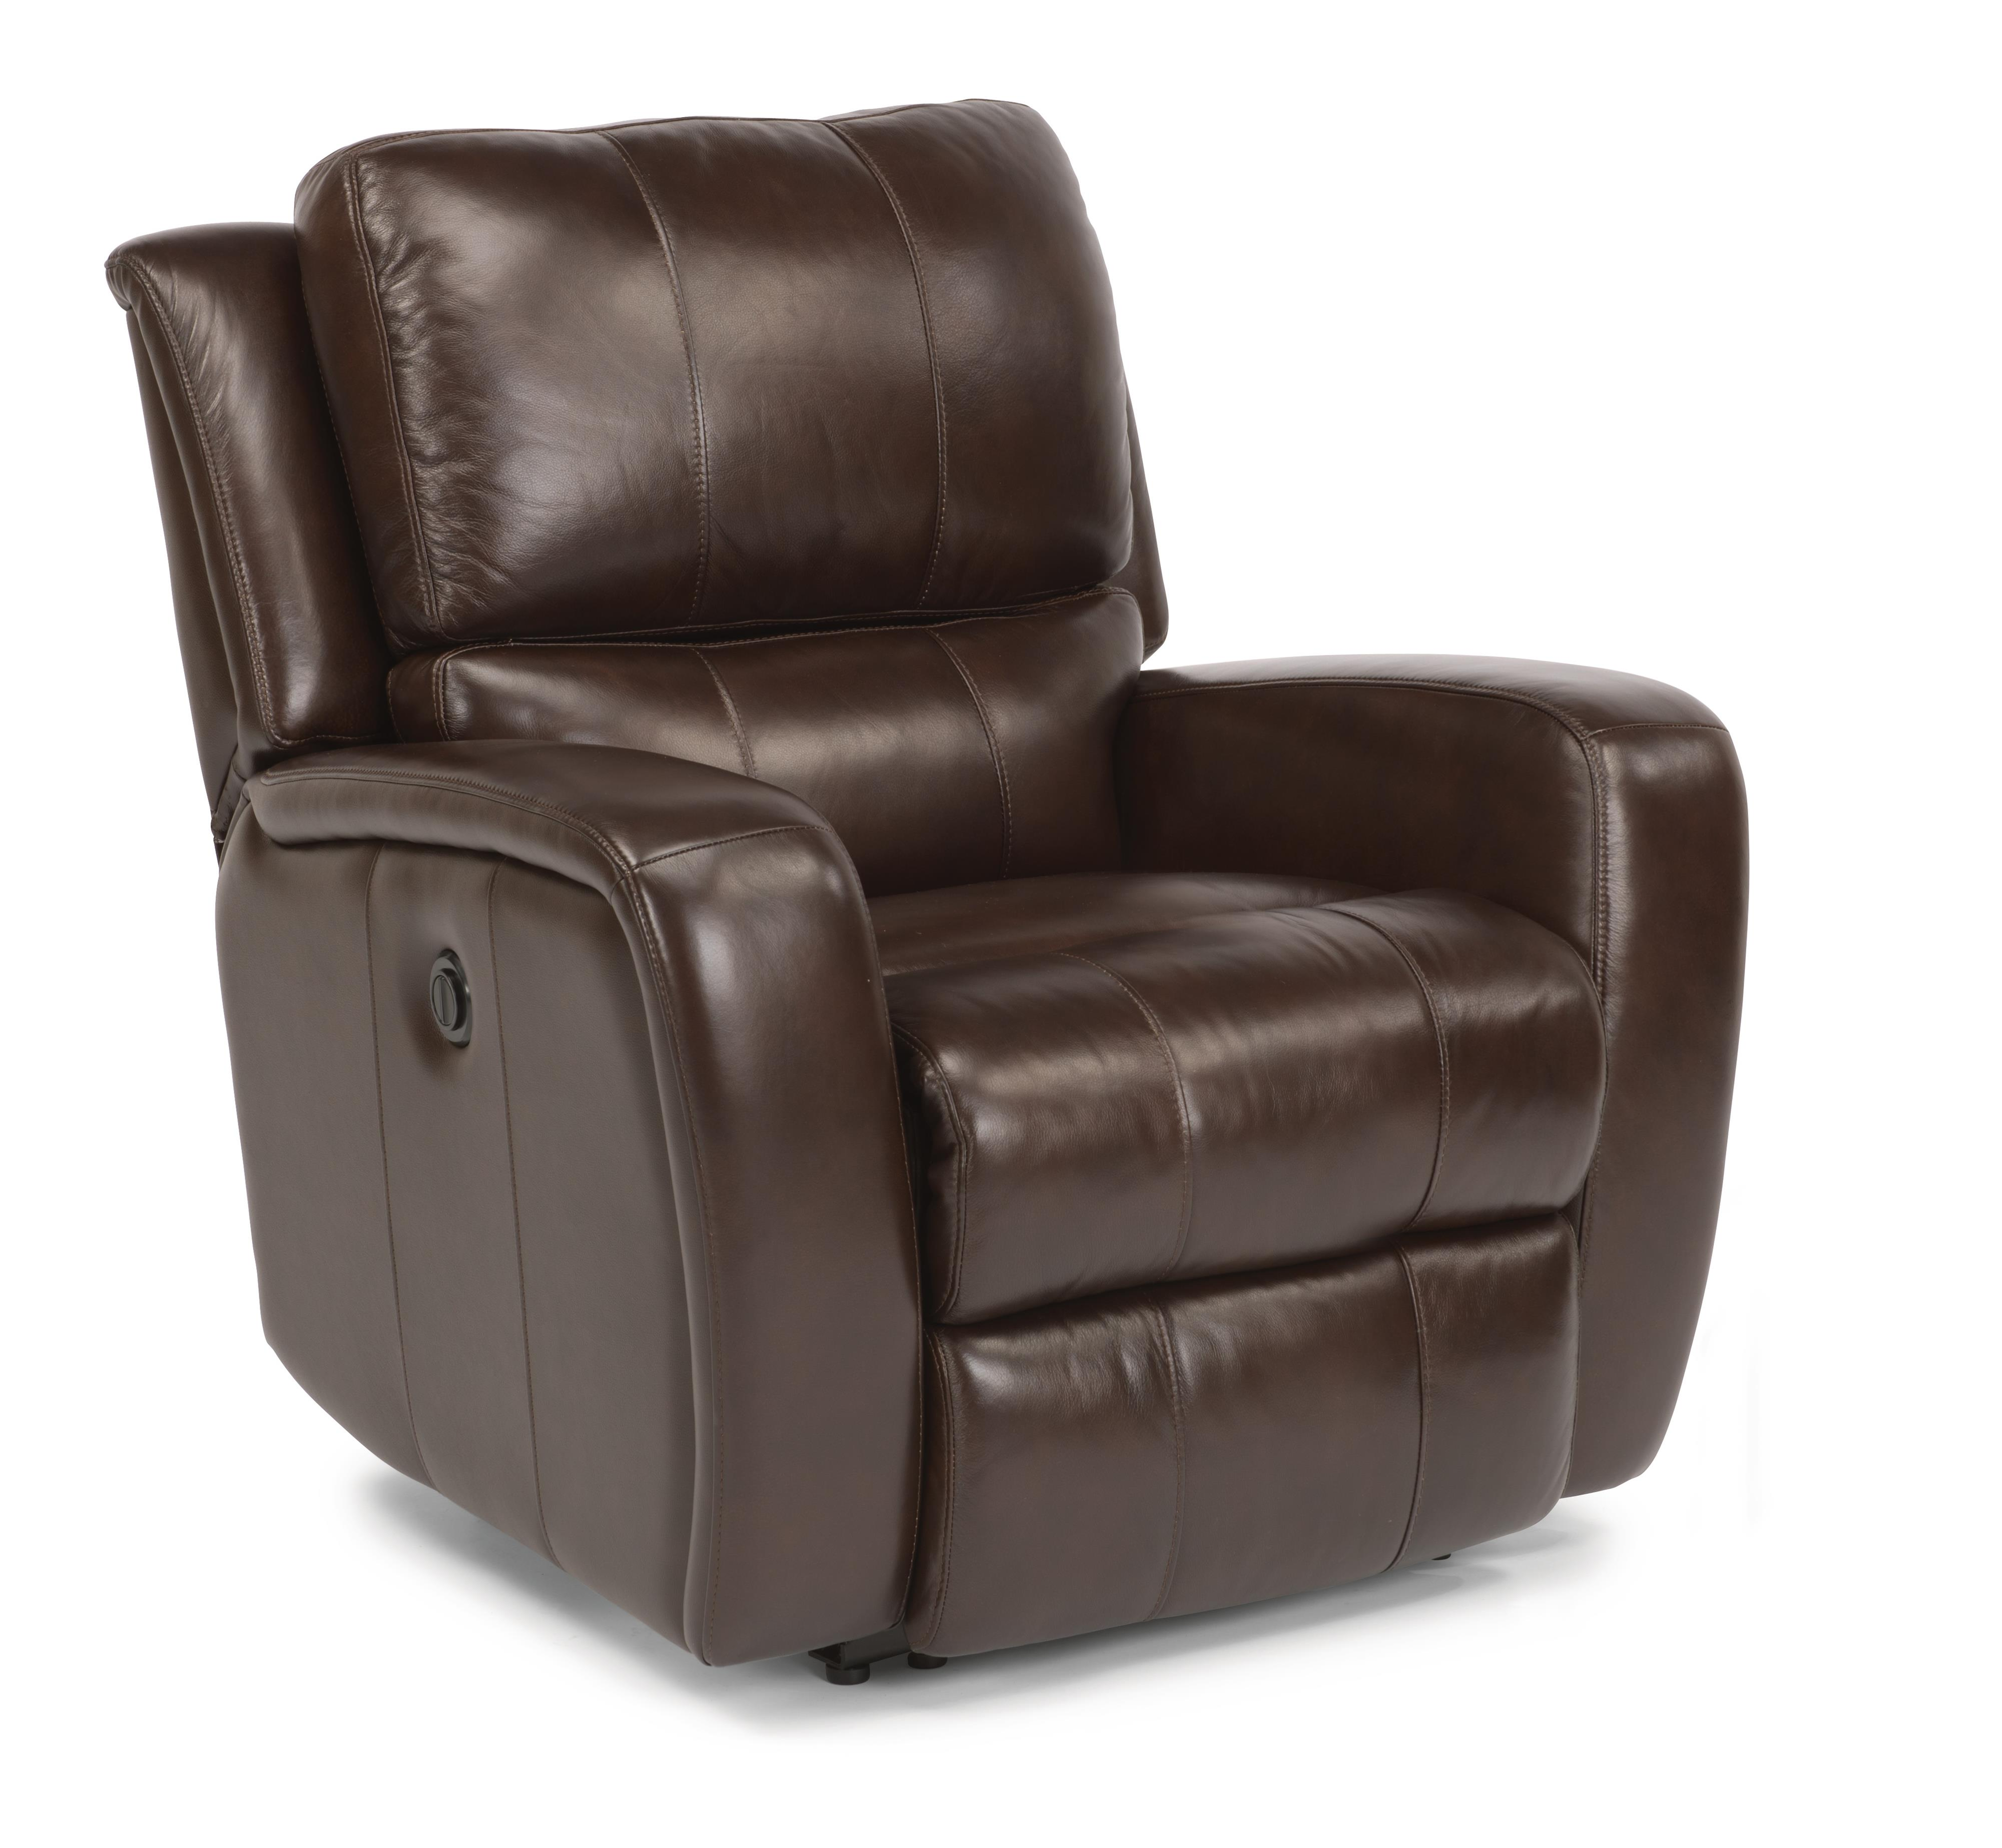 Flexsteel Latitudes-Hammond Glider Recliner with power - Item Number: 1157-54P-555-72